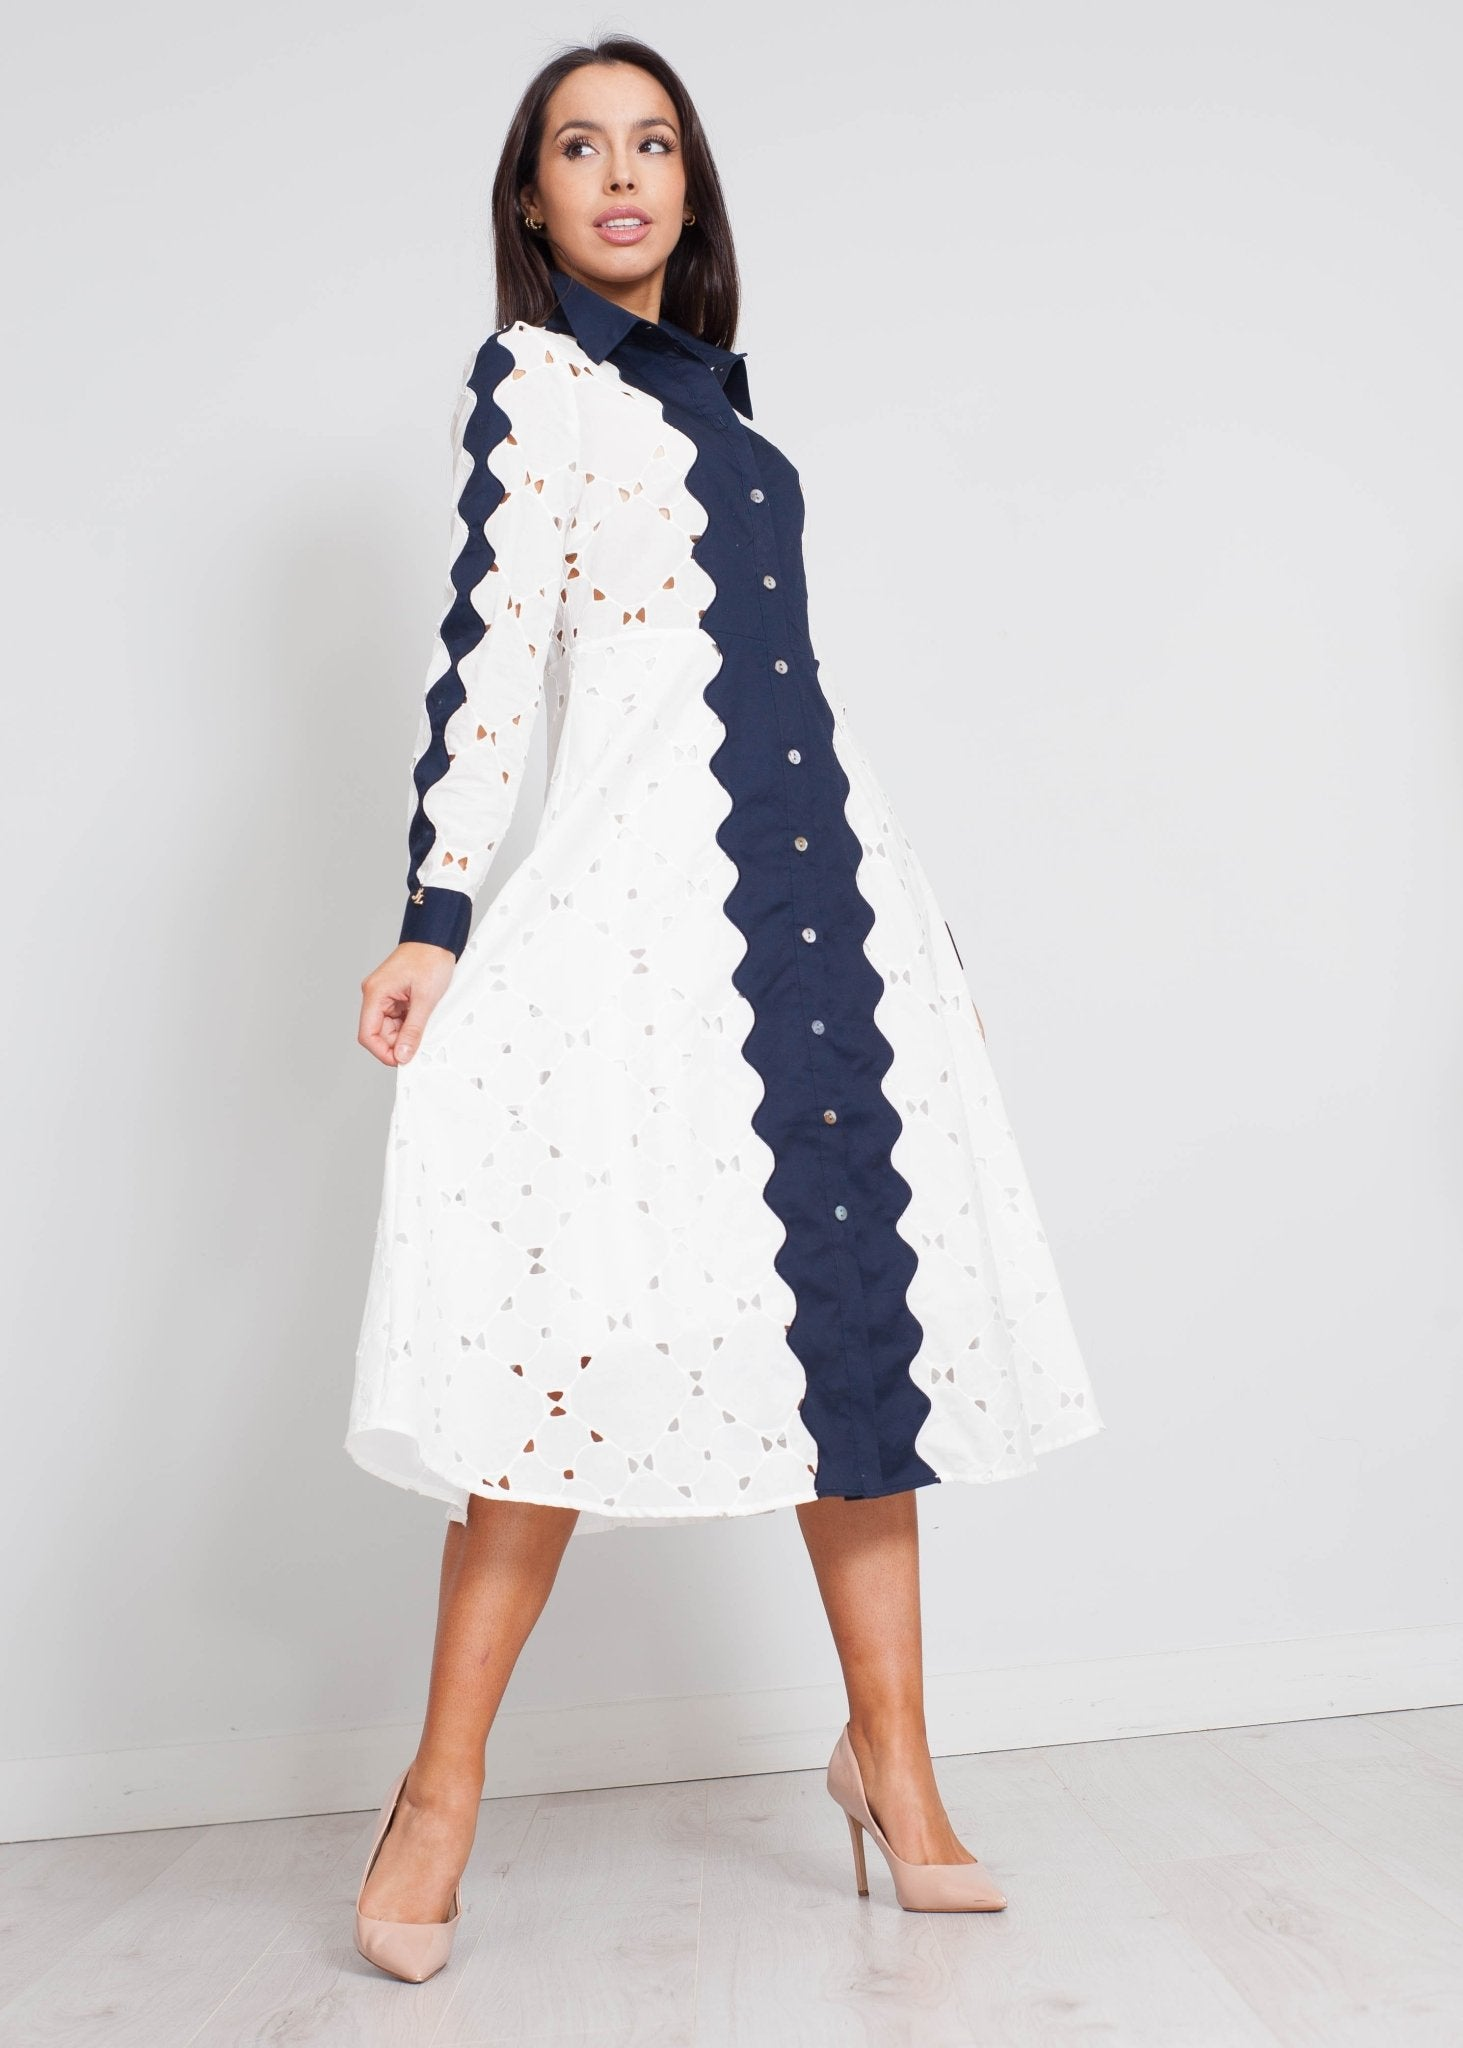 Jasmine Embroidered Dress In Navy Mix - The Walk in Wardrobe